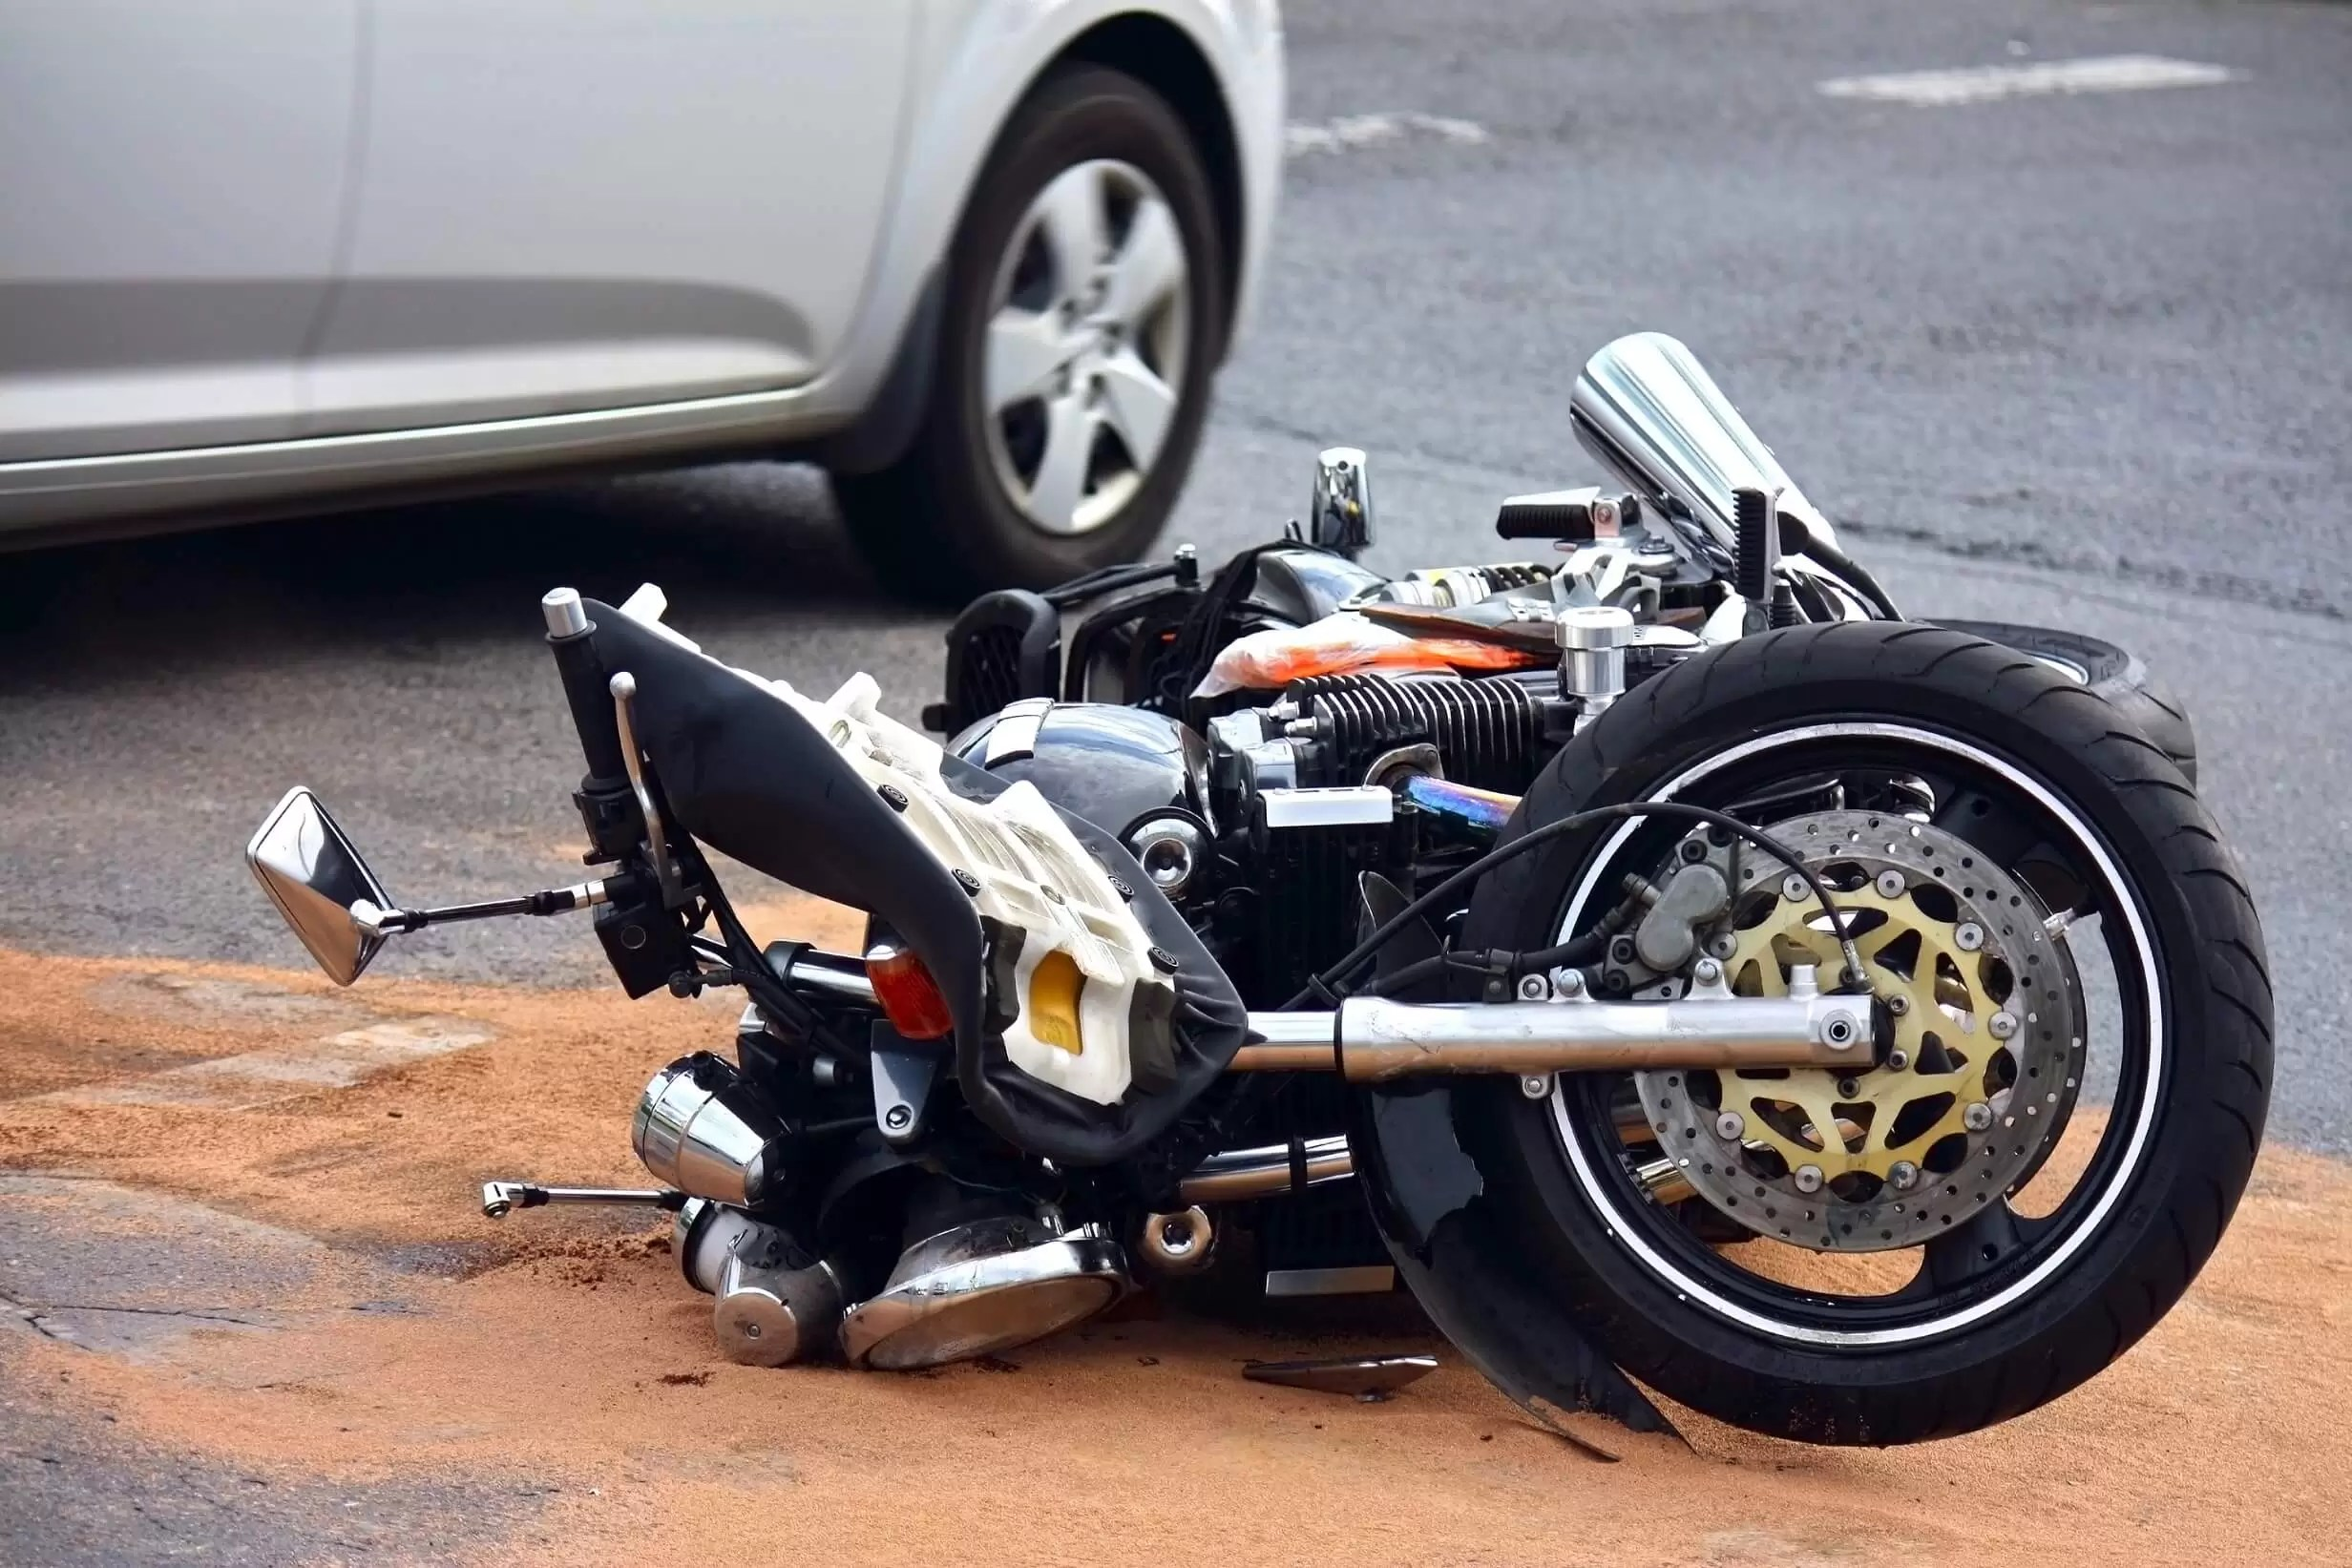 Common Places For Motorcycle Accidents